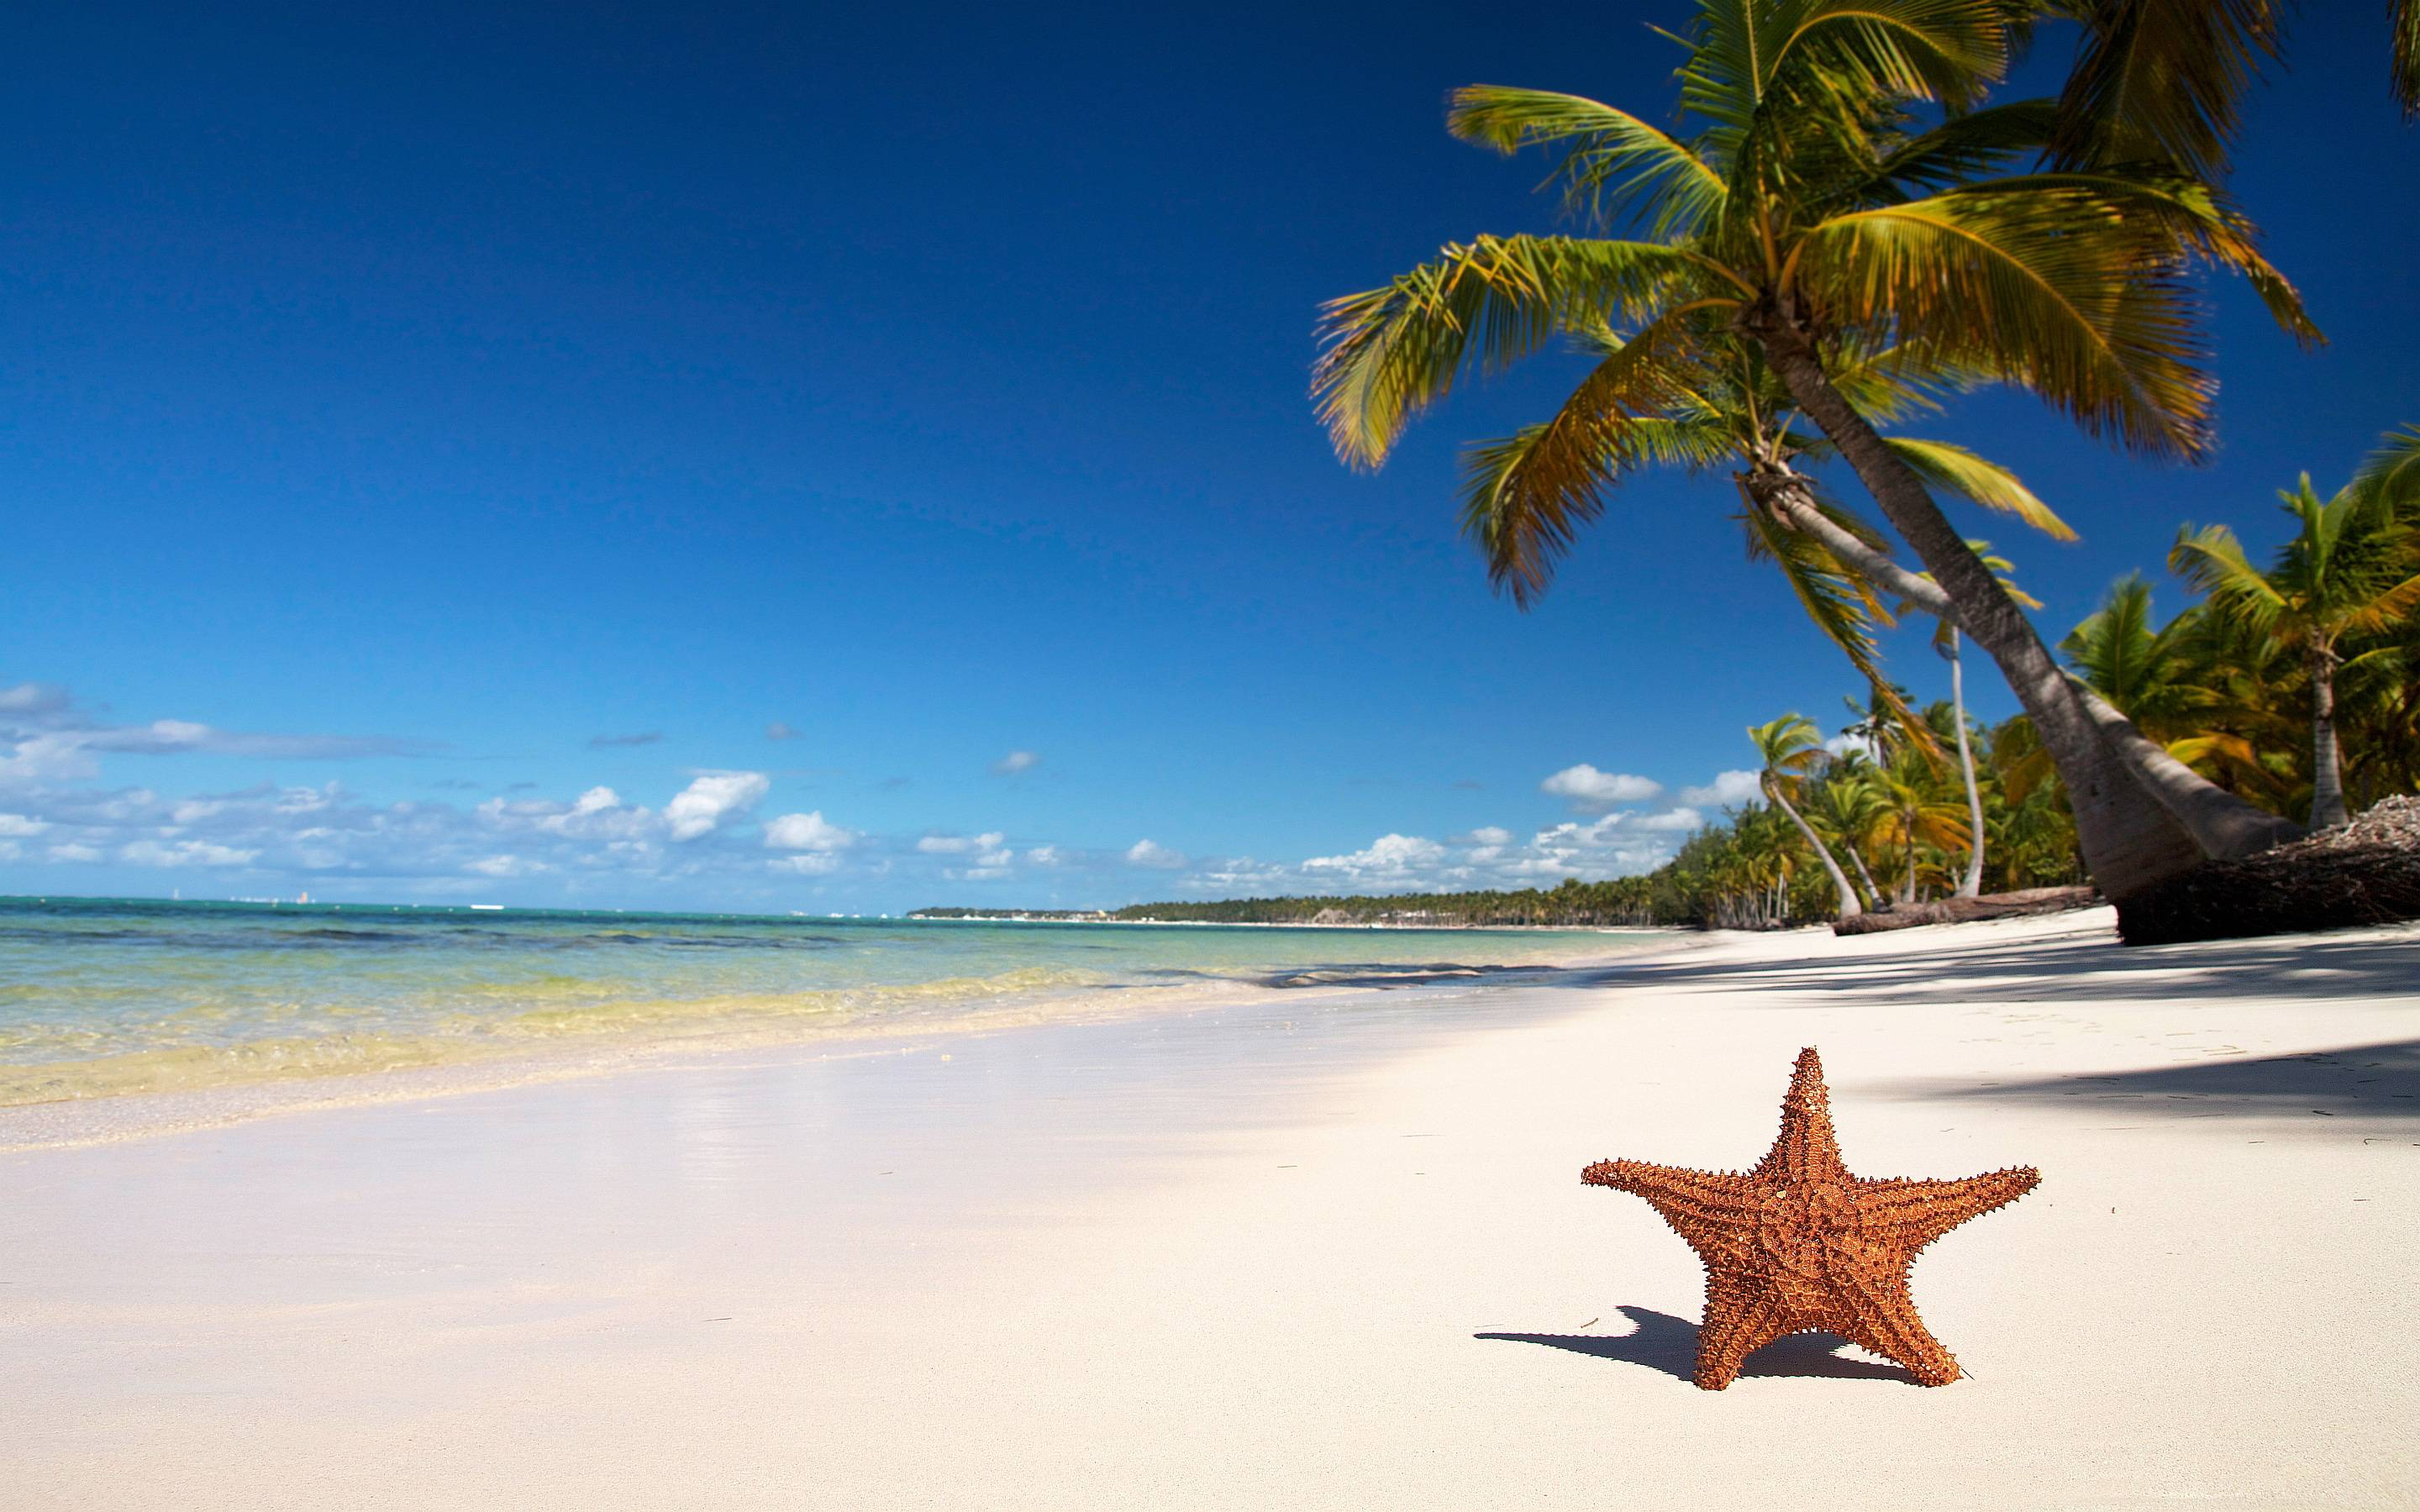 20 tropical backgrounds - photo #21